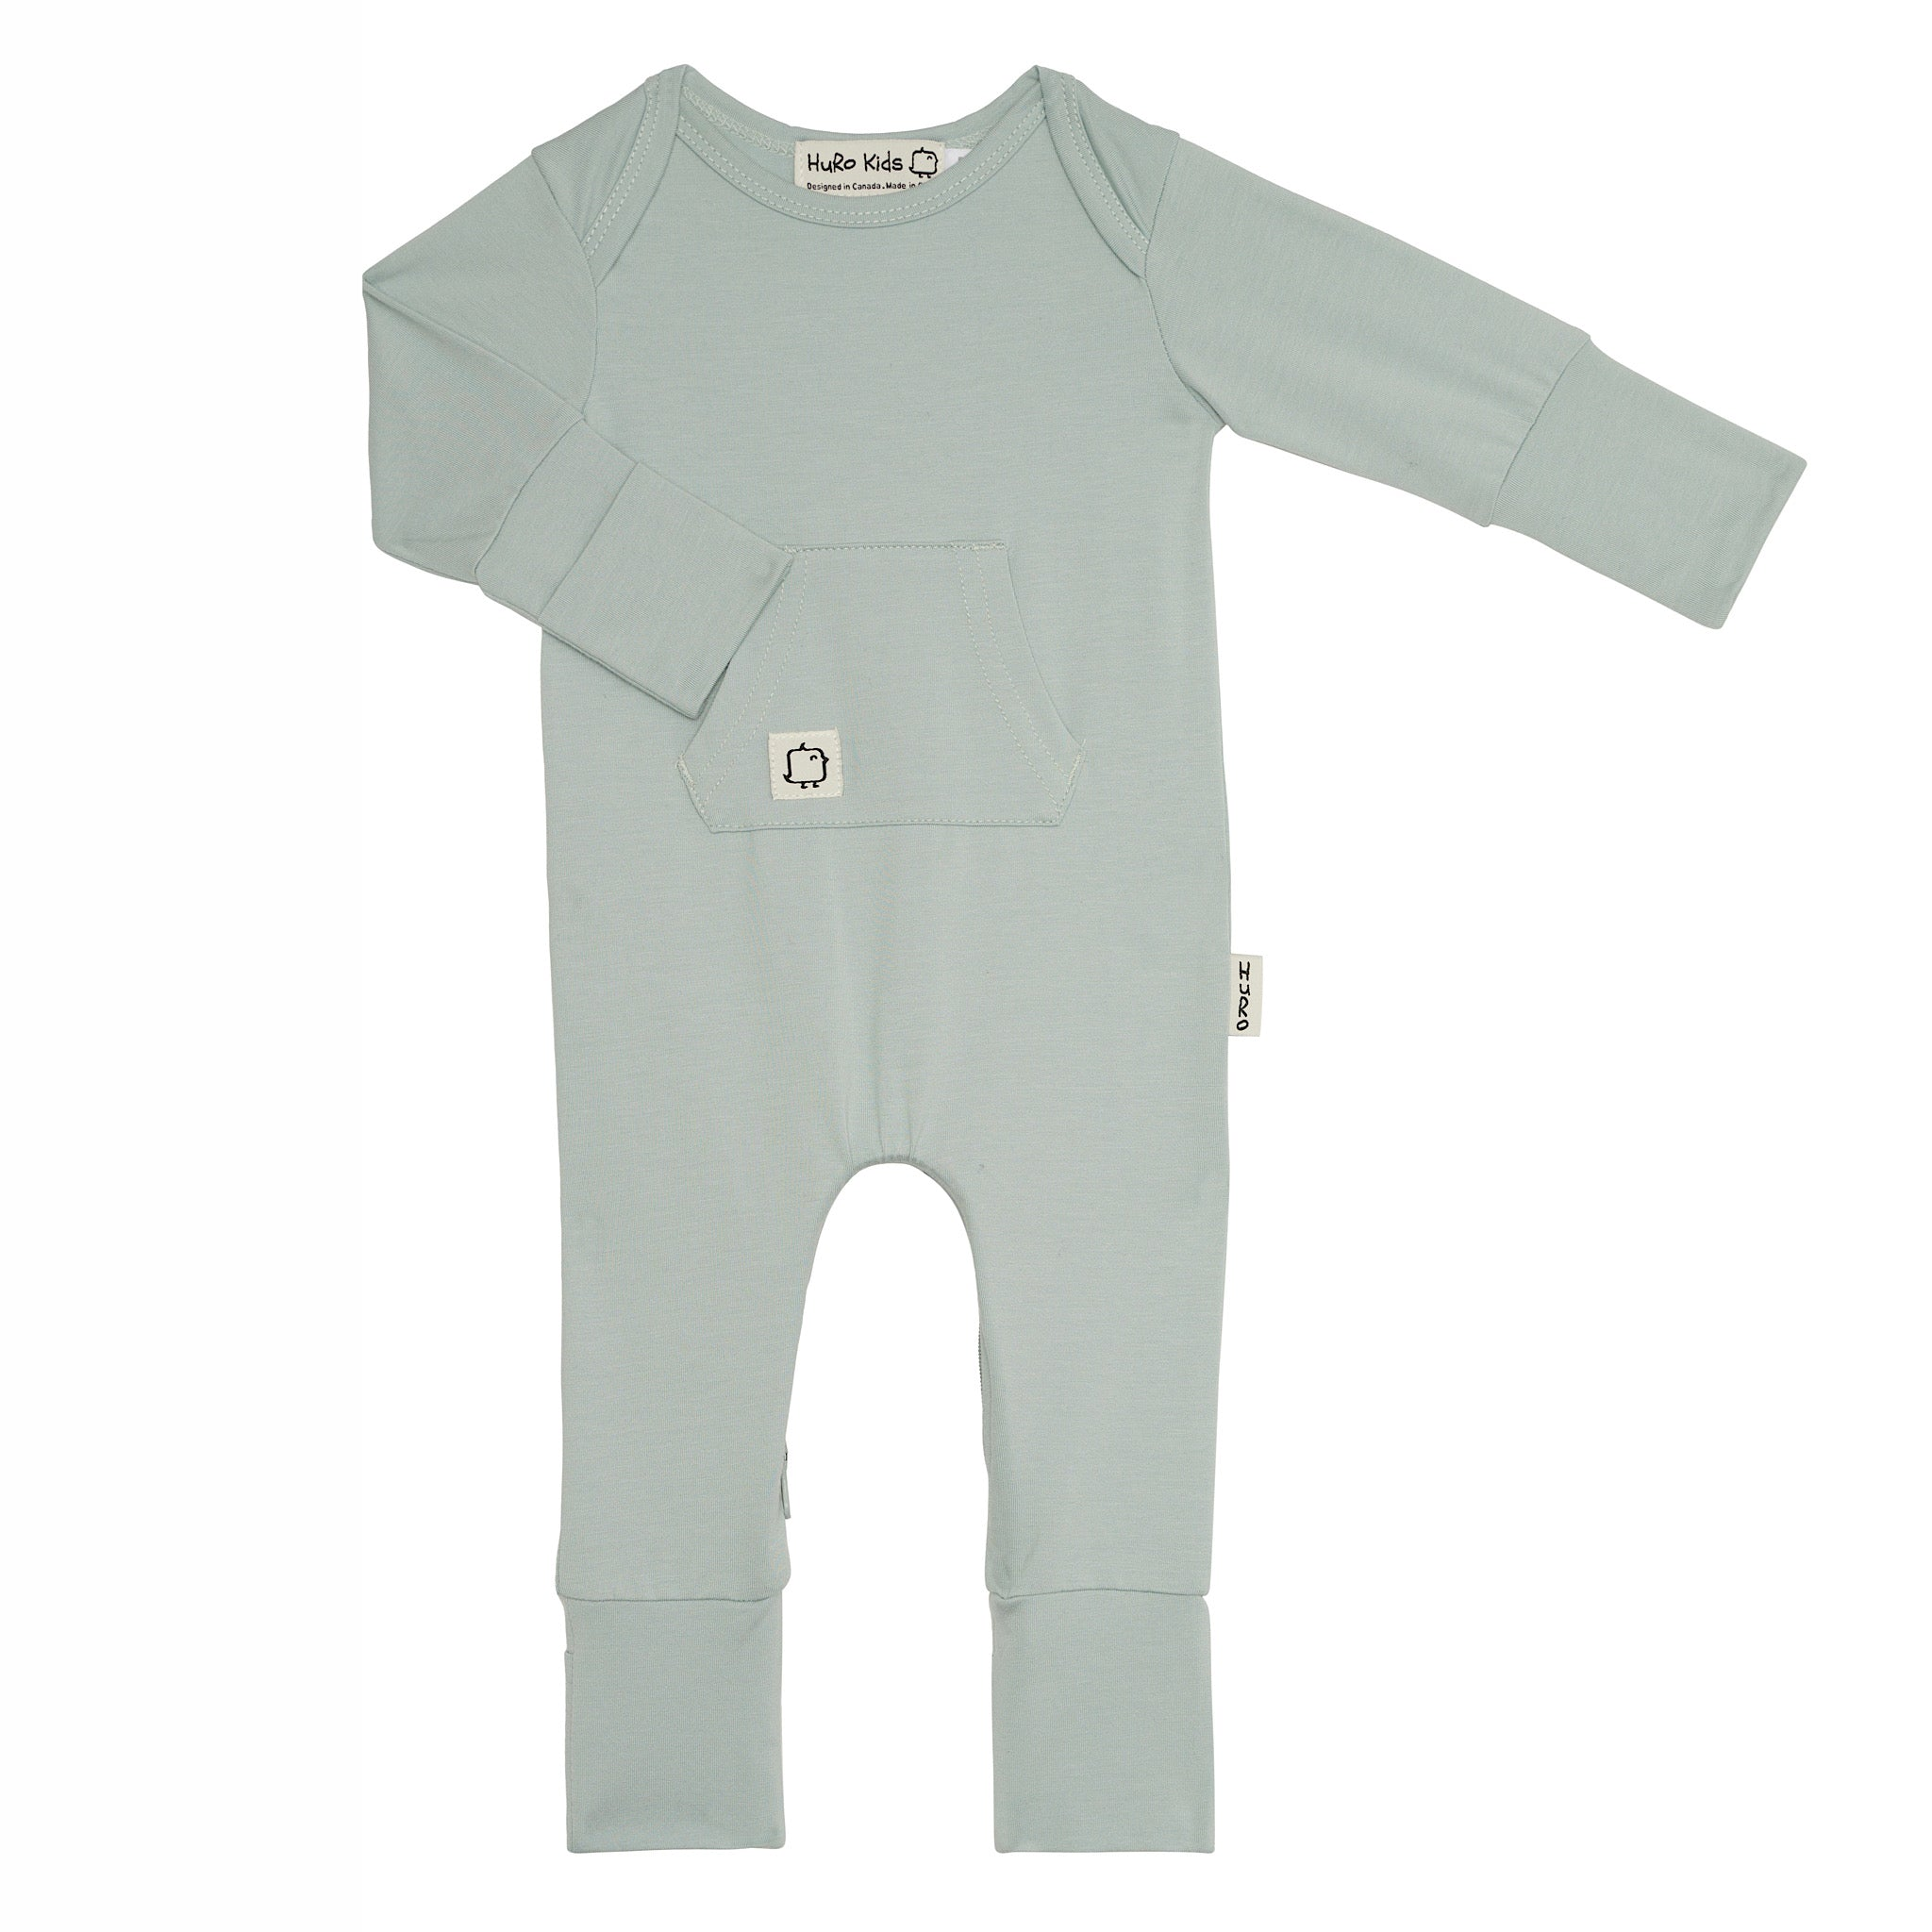 New Perfect Onesie -Sky - HuRo Kids Clothing